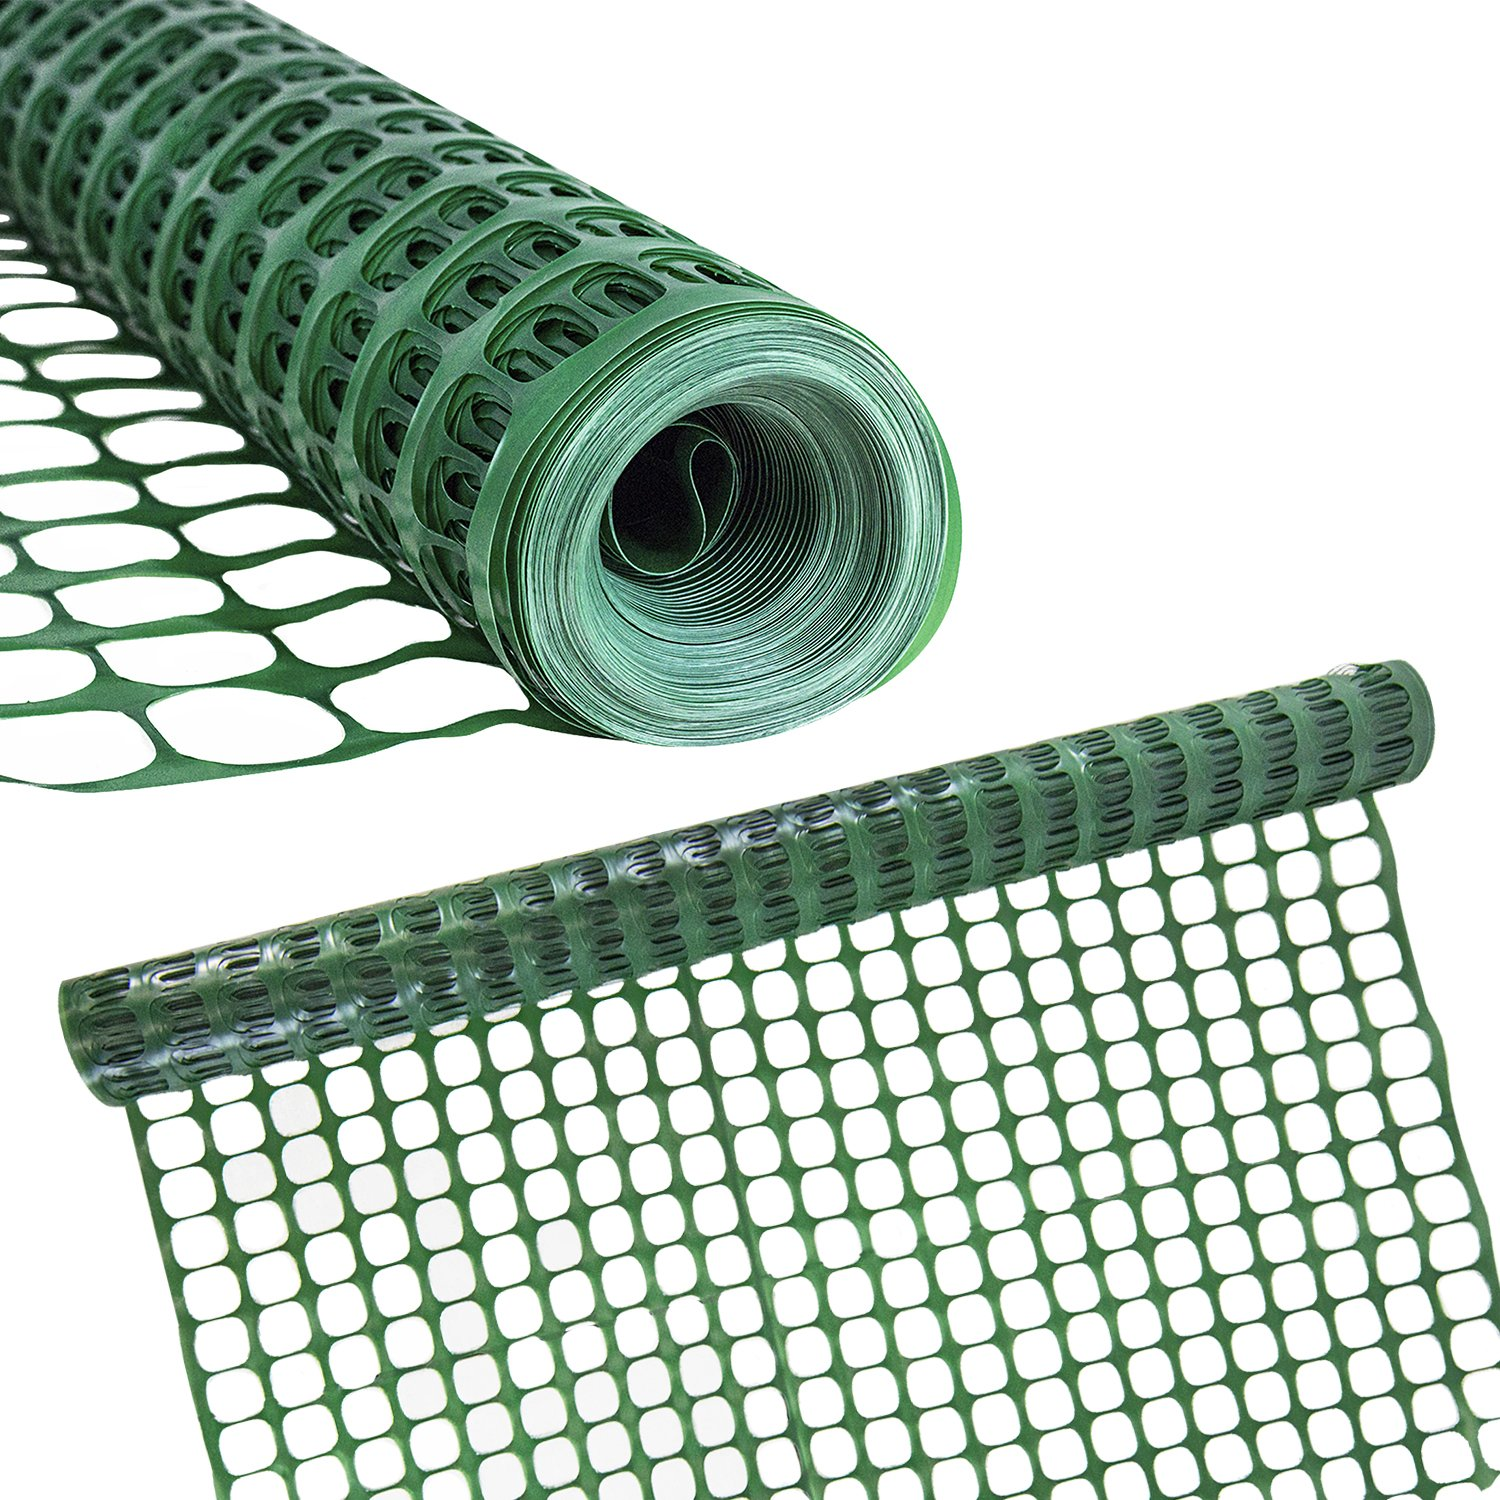 Houseables Temporary Fencing, Mesh Snow Fence, Plastic, Safety Garden  Netting, Single, Green, 4 x 100' Feet, Above Ground Barrier, for Deer,  Kids,